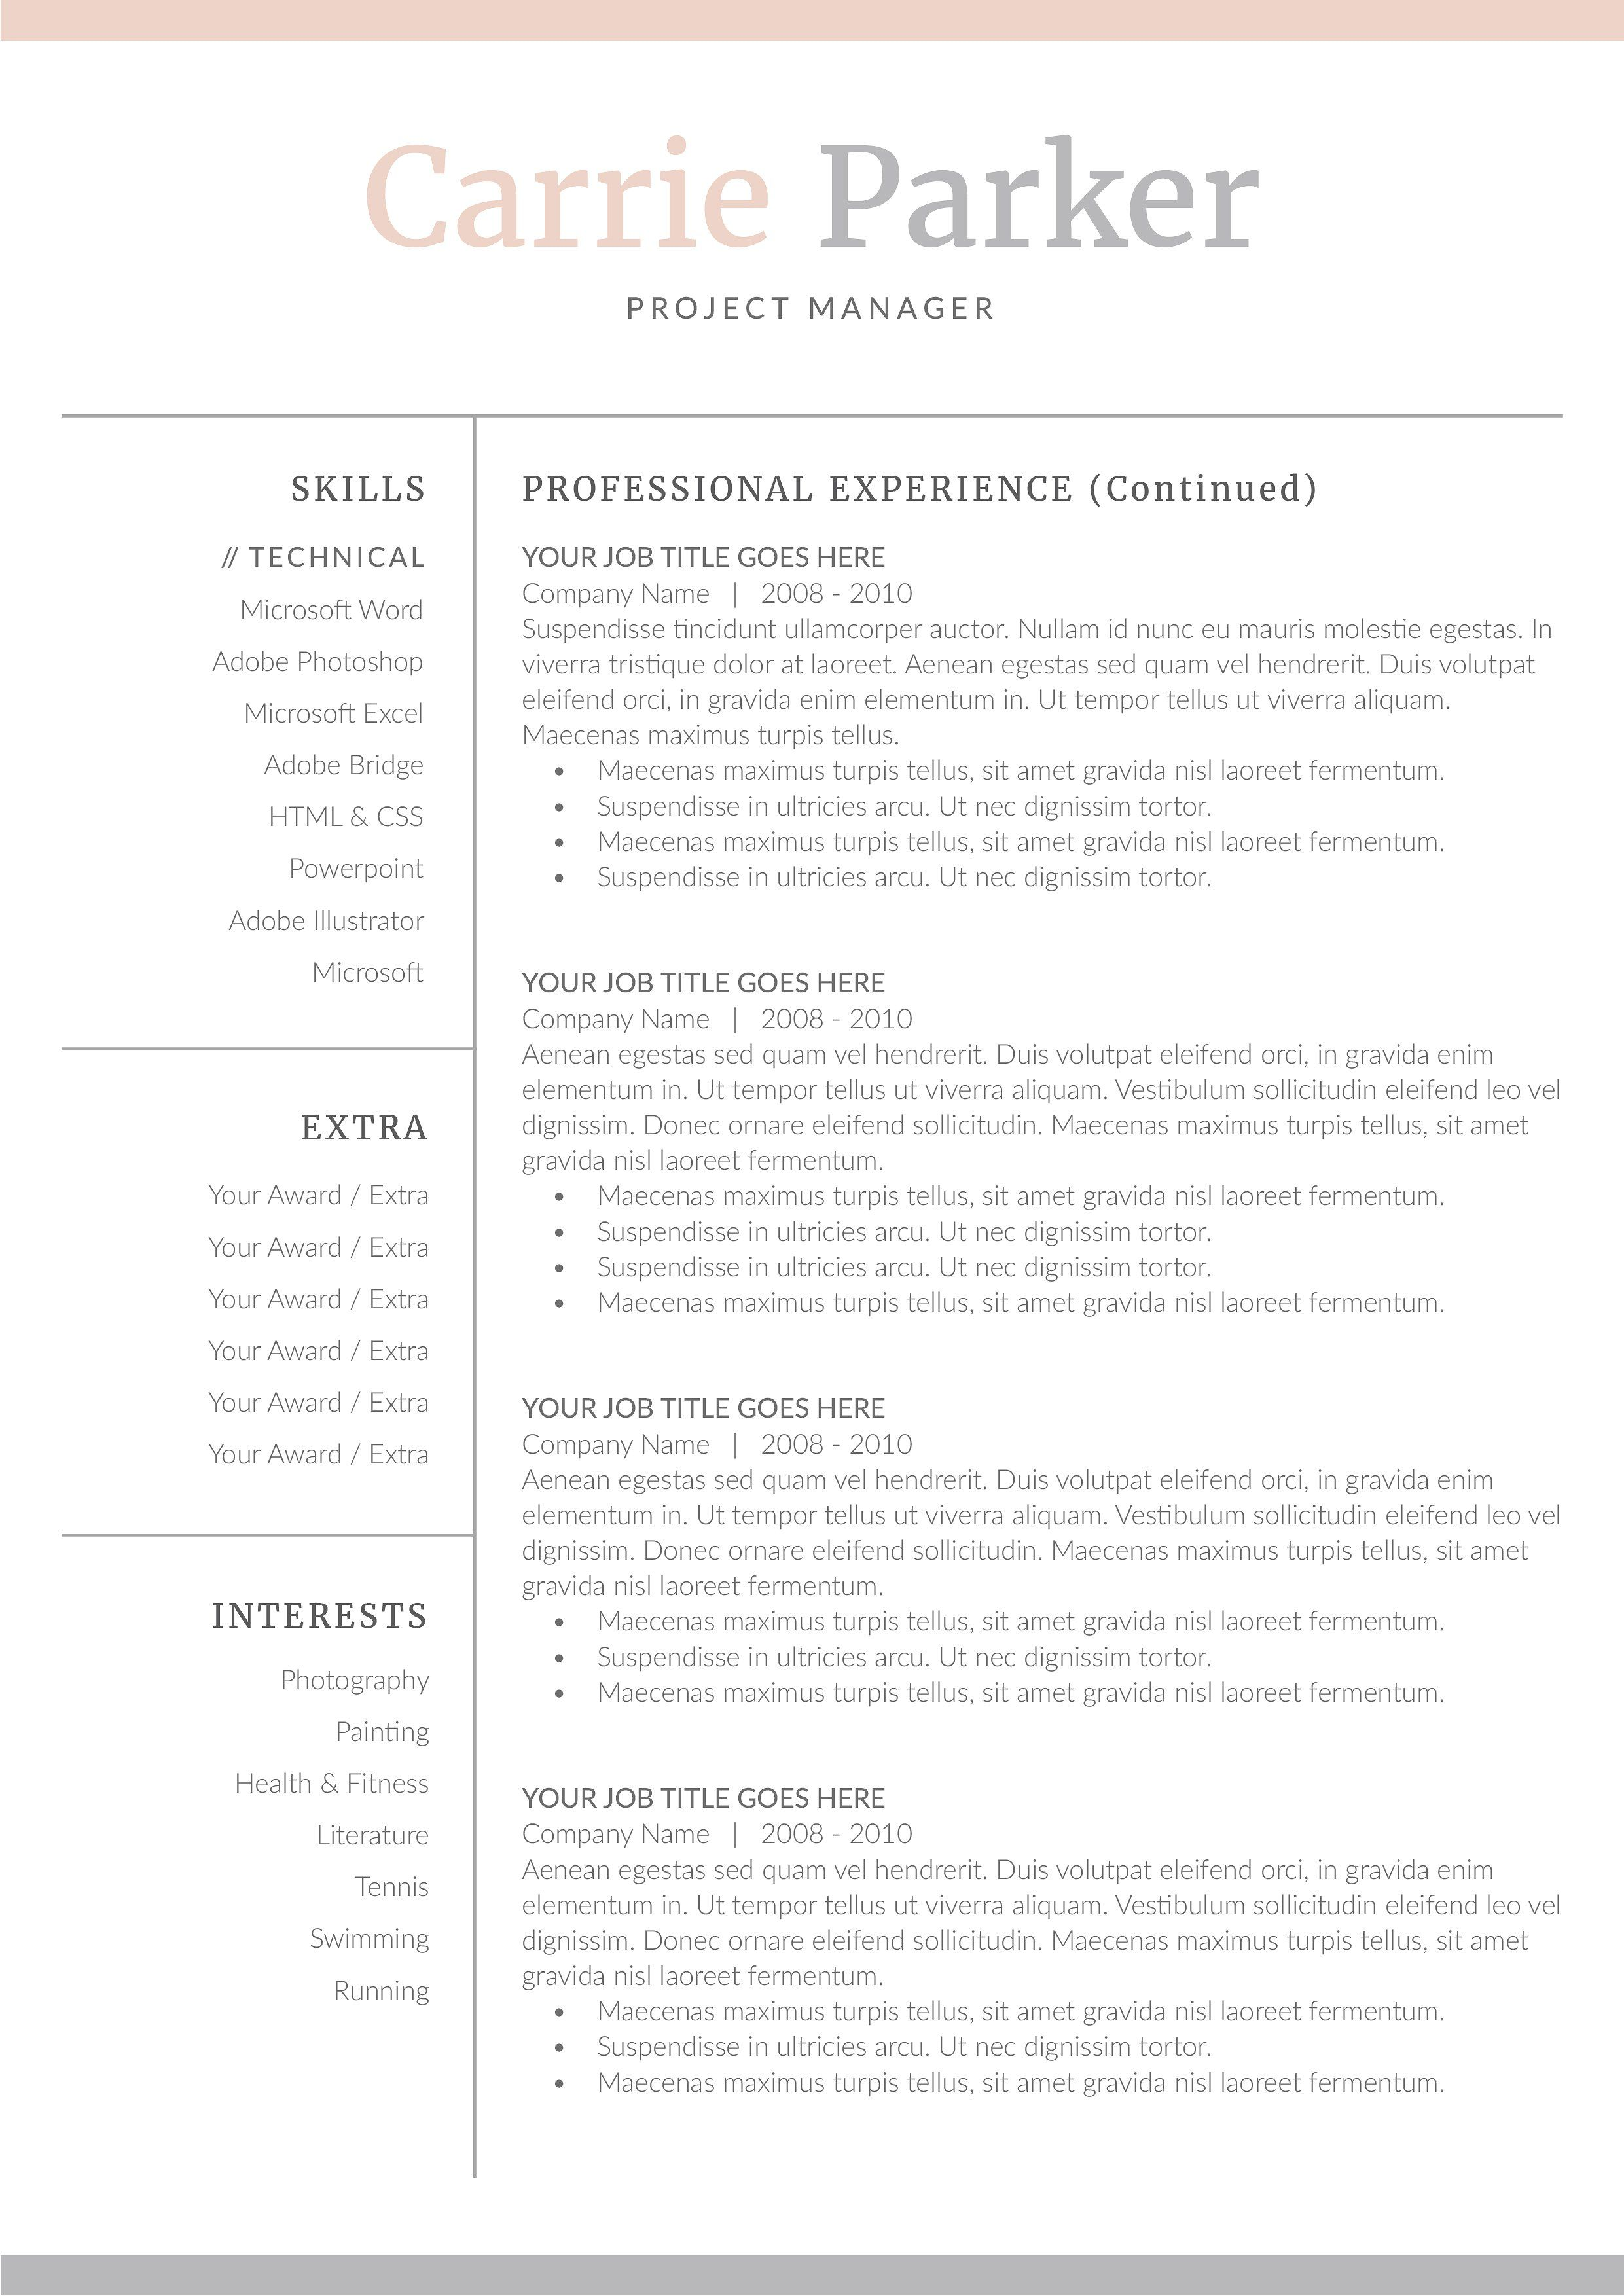 word resume cover letter template by demedev on creativemarket ad - Microsoft Word Resume Cover Letter Template